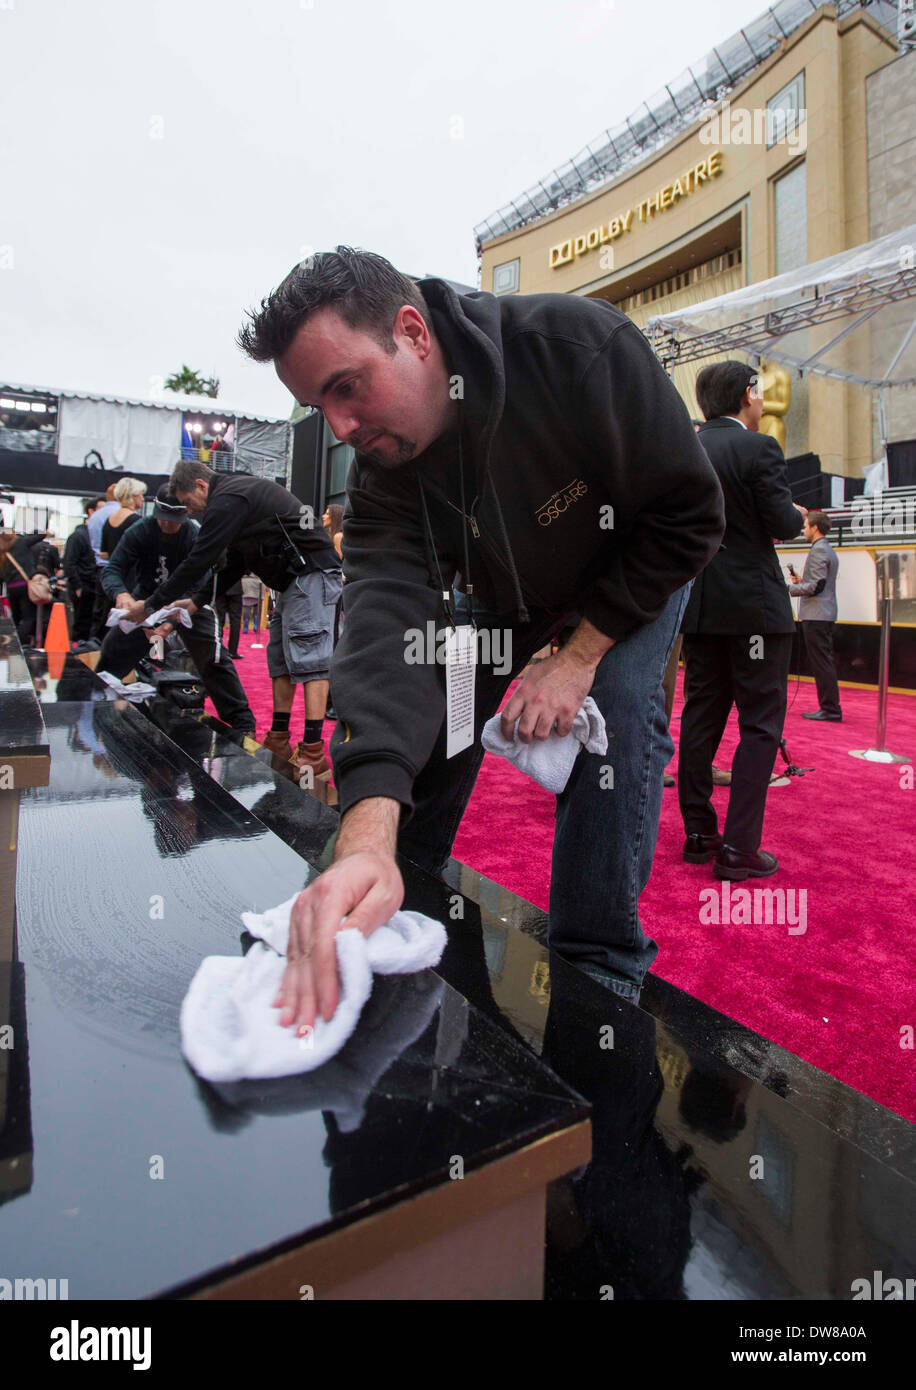 (140303) -- LOS ANGELES, March 3, 2014 (xinhua) -- A worker cleans the red carpet arrival area in front of the Dolby Theatre before the 86th Academy Awards in Los Angeles, the United States, March 2, 2014. (Xinhua/Zhao Hanrong) (hcs) - Stock Image